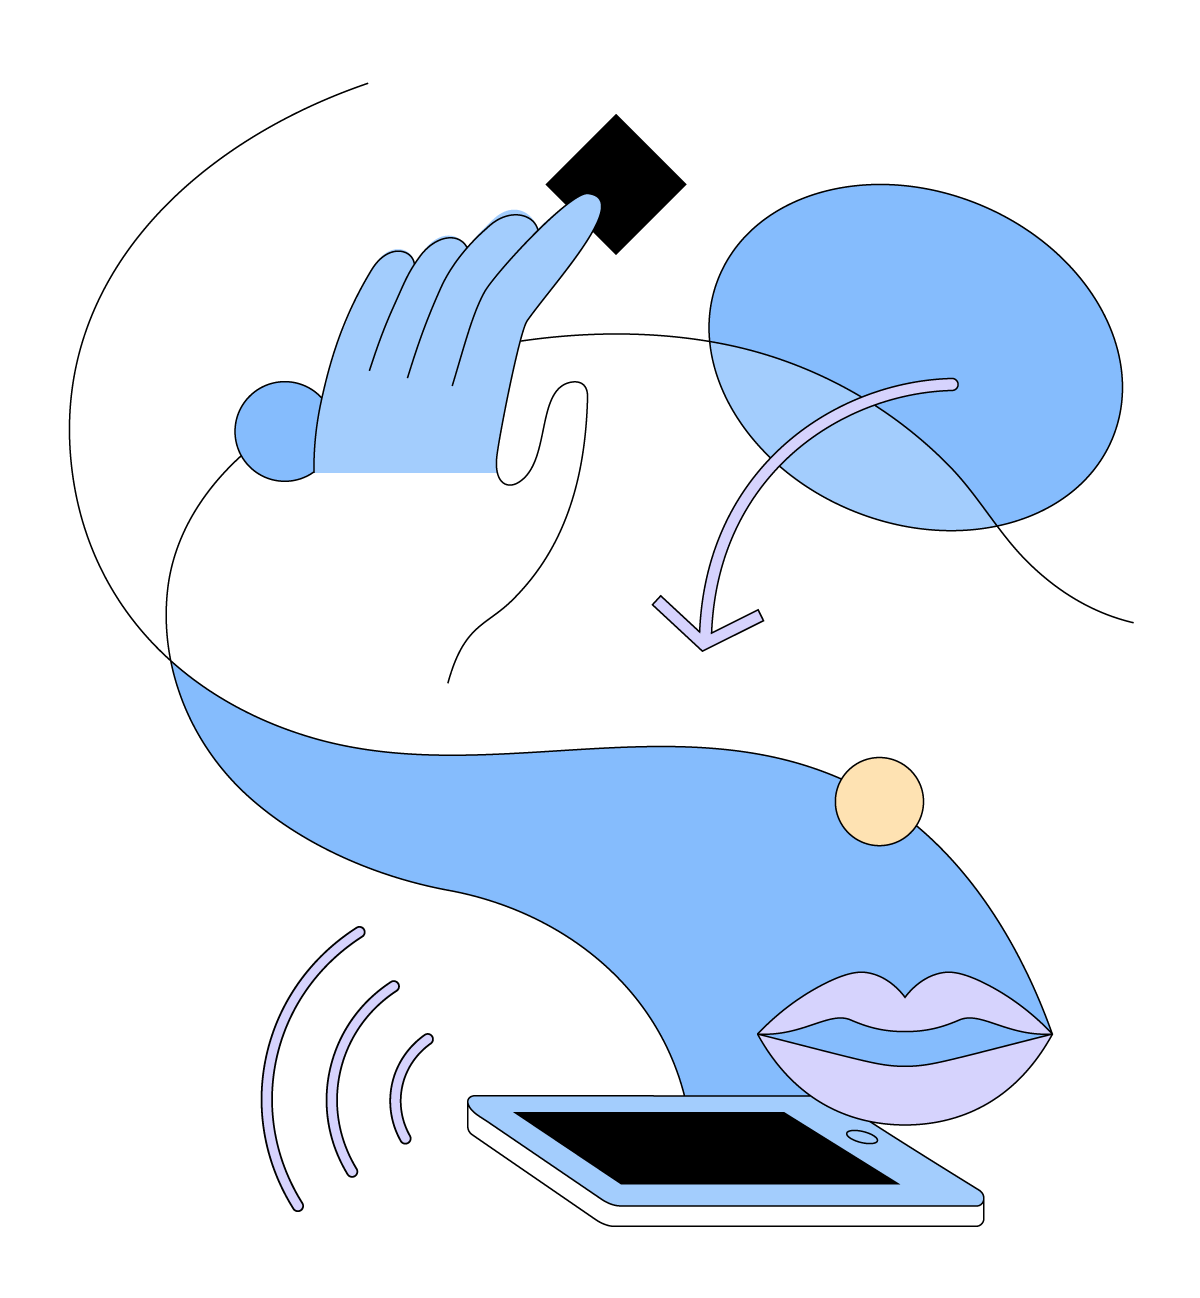 Abstract, cartoon graphic featuring a mobile tablet, lips and a hand.